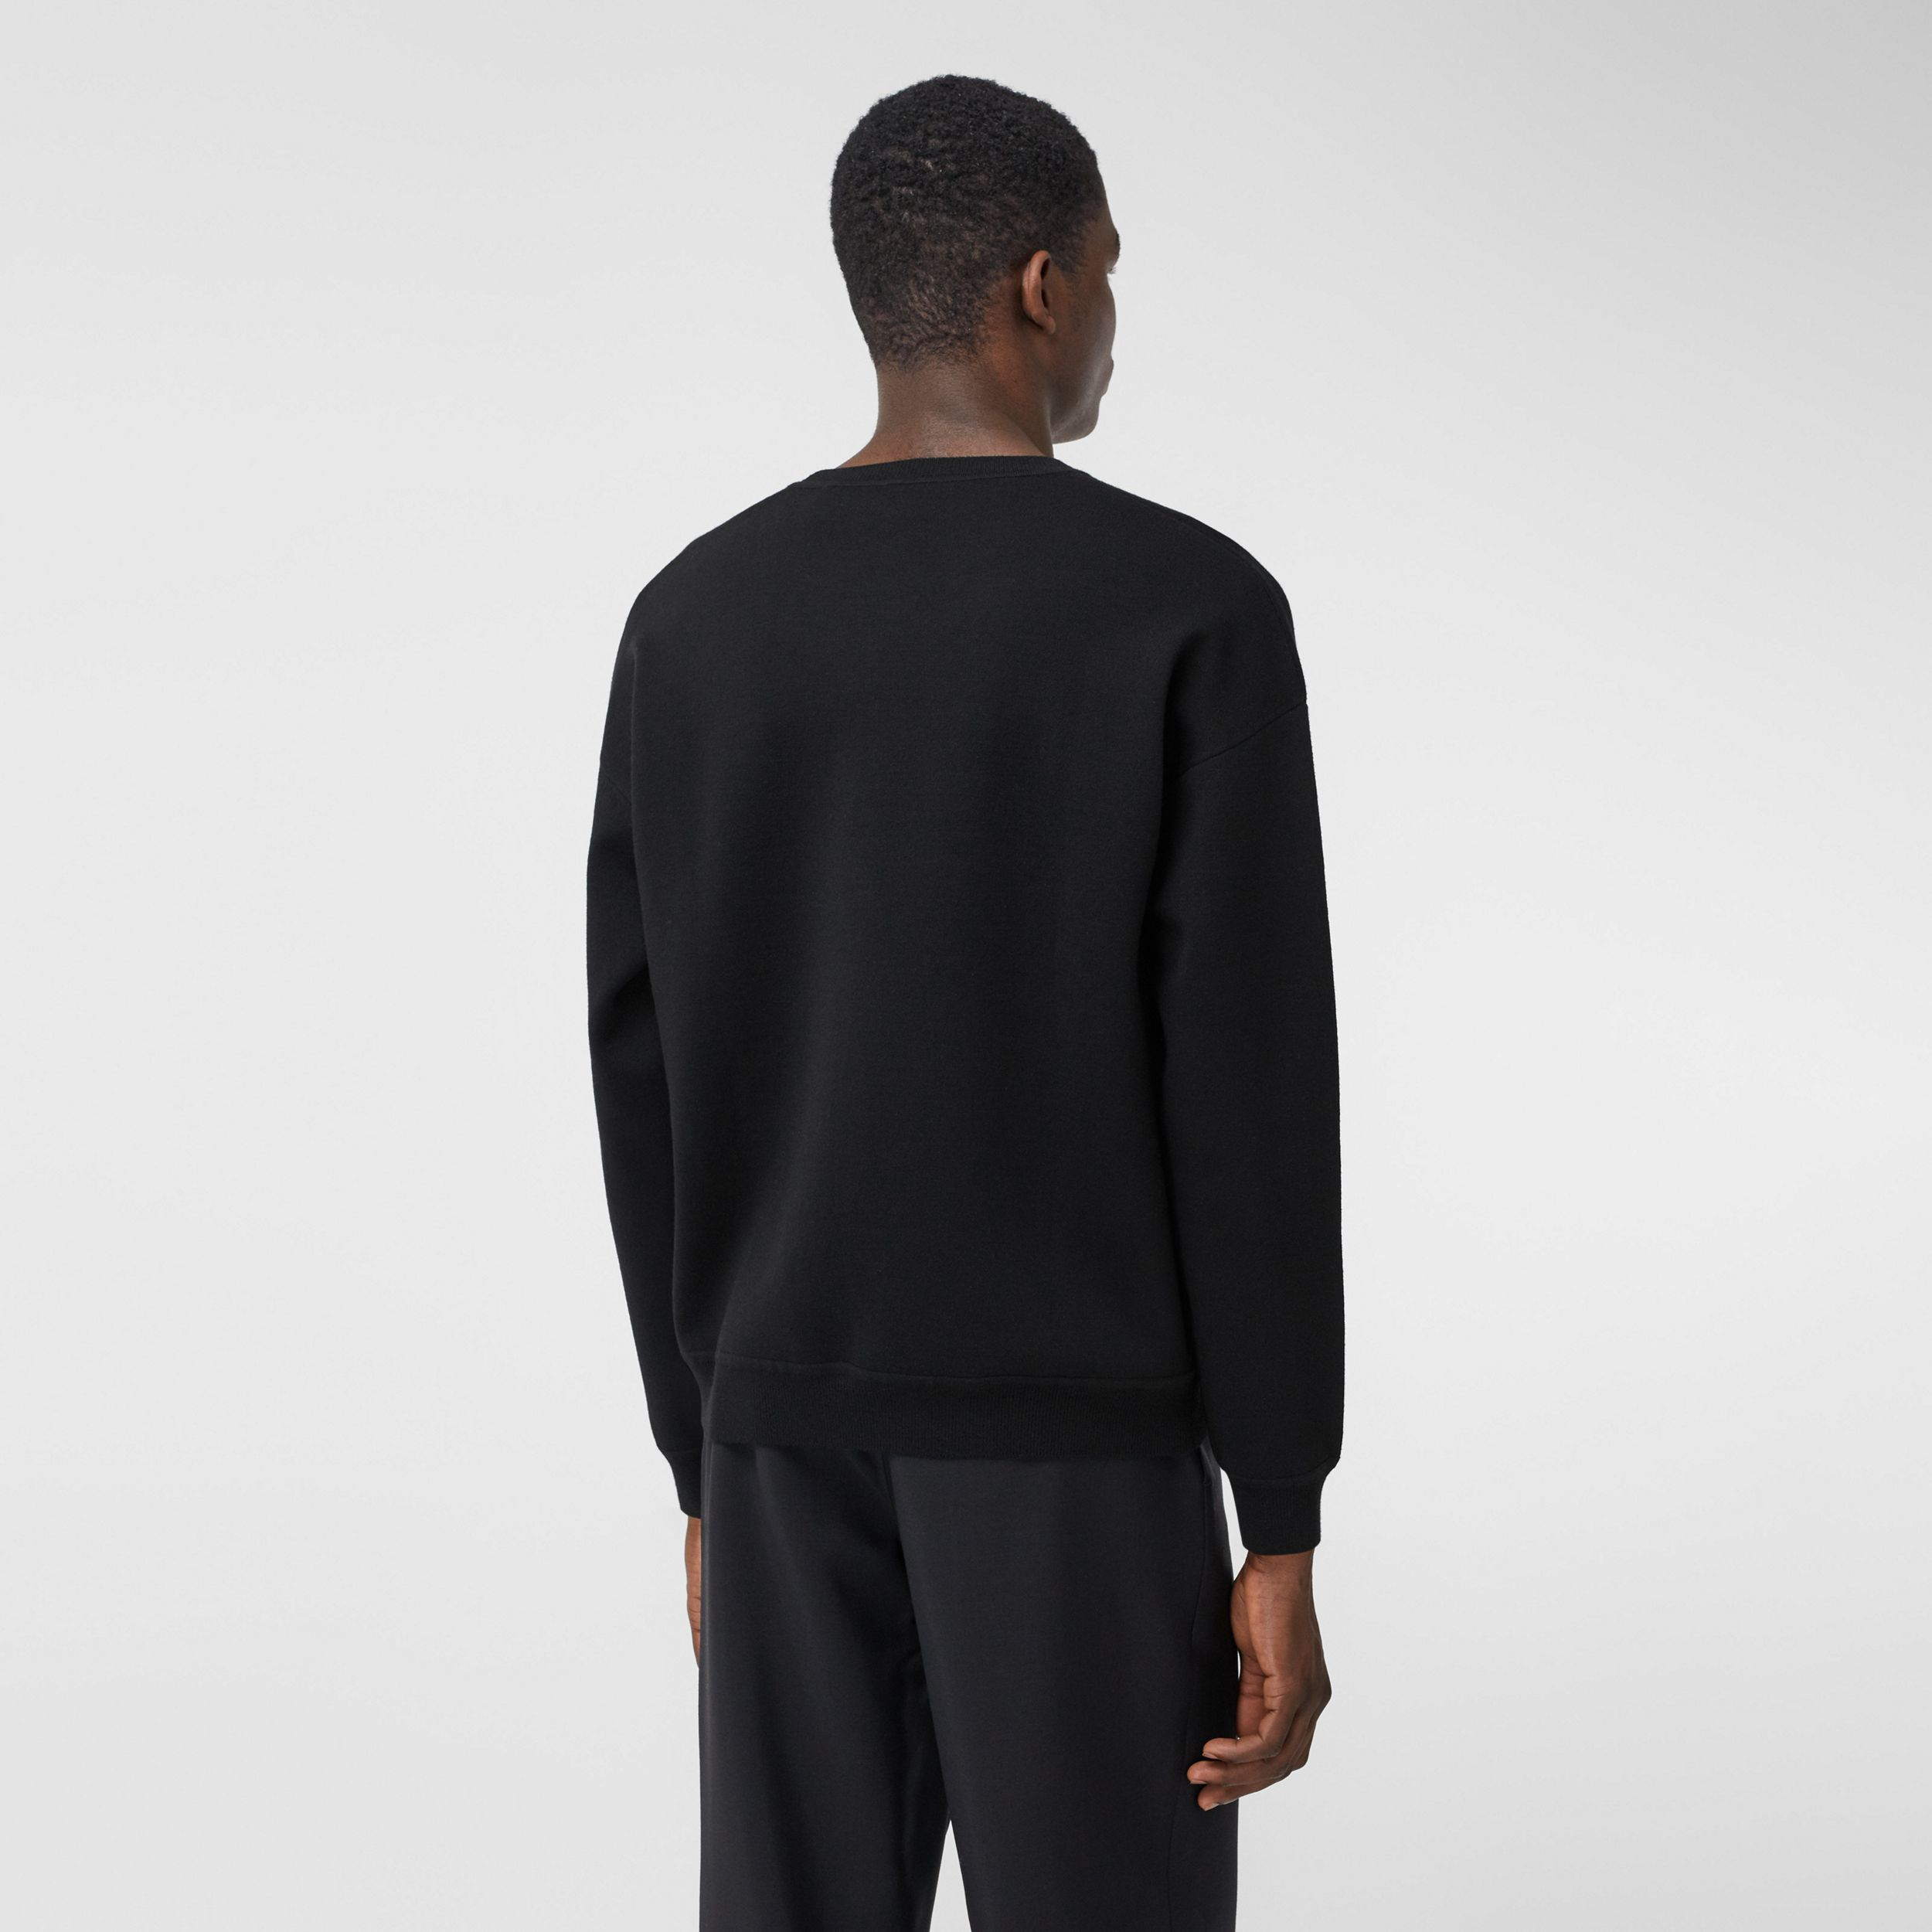 Slogan Intarsia Merino Wool Blend Sweater in Black - Men | Burberry - 3